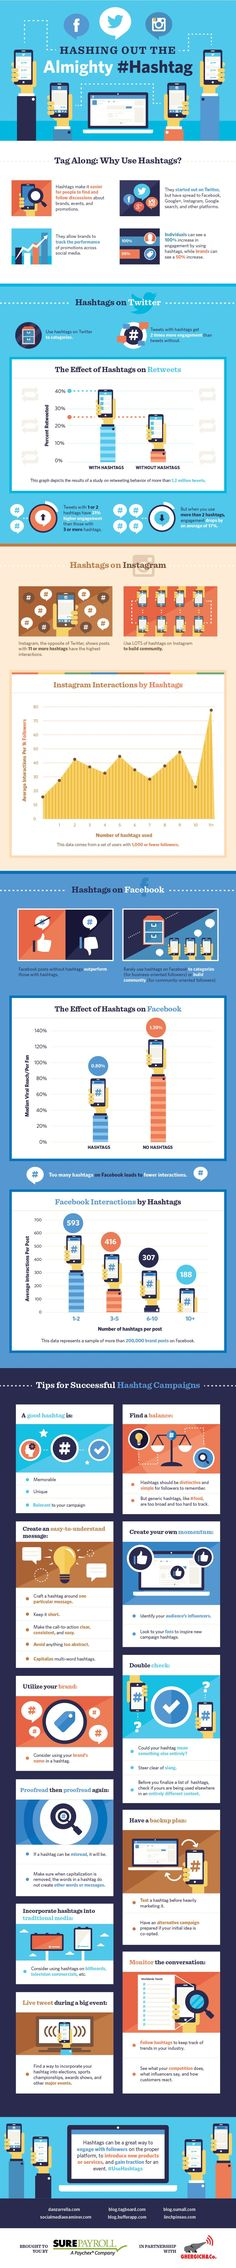 #SocialMedia Marketing: How To Use Hashtags On Facebook, Twitter And Instagram - #infographic